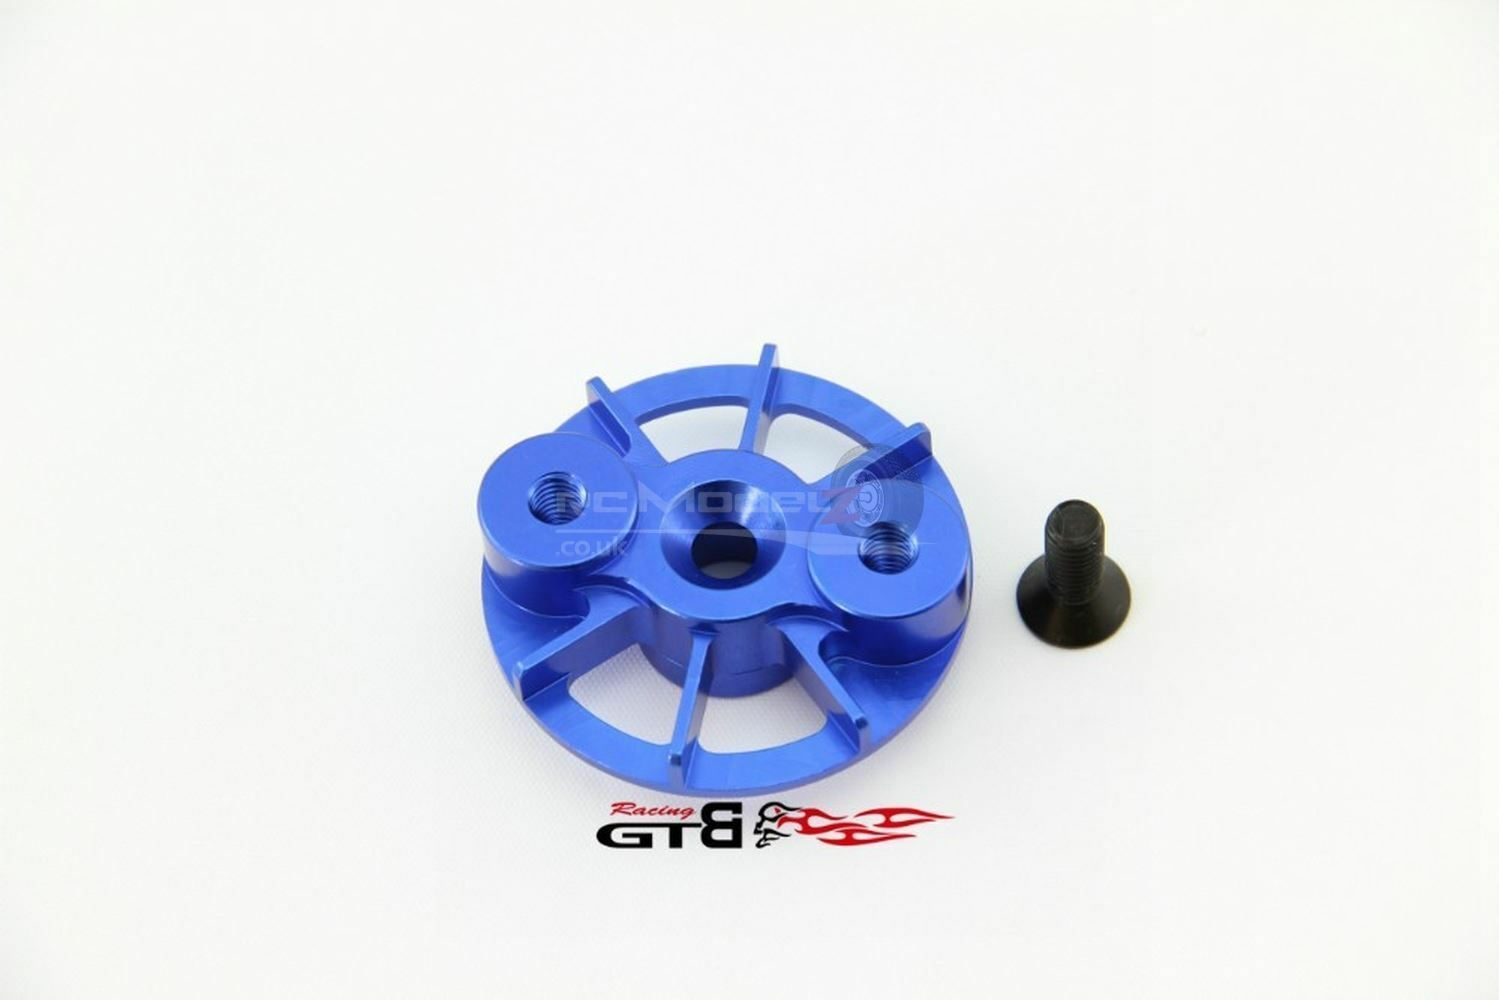 GTB Racing Alloy Cooling Clutch Plate shoes Holder Upgrade for Losi 5ive & KMX2